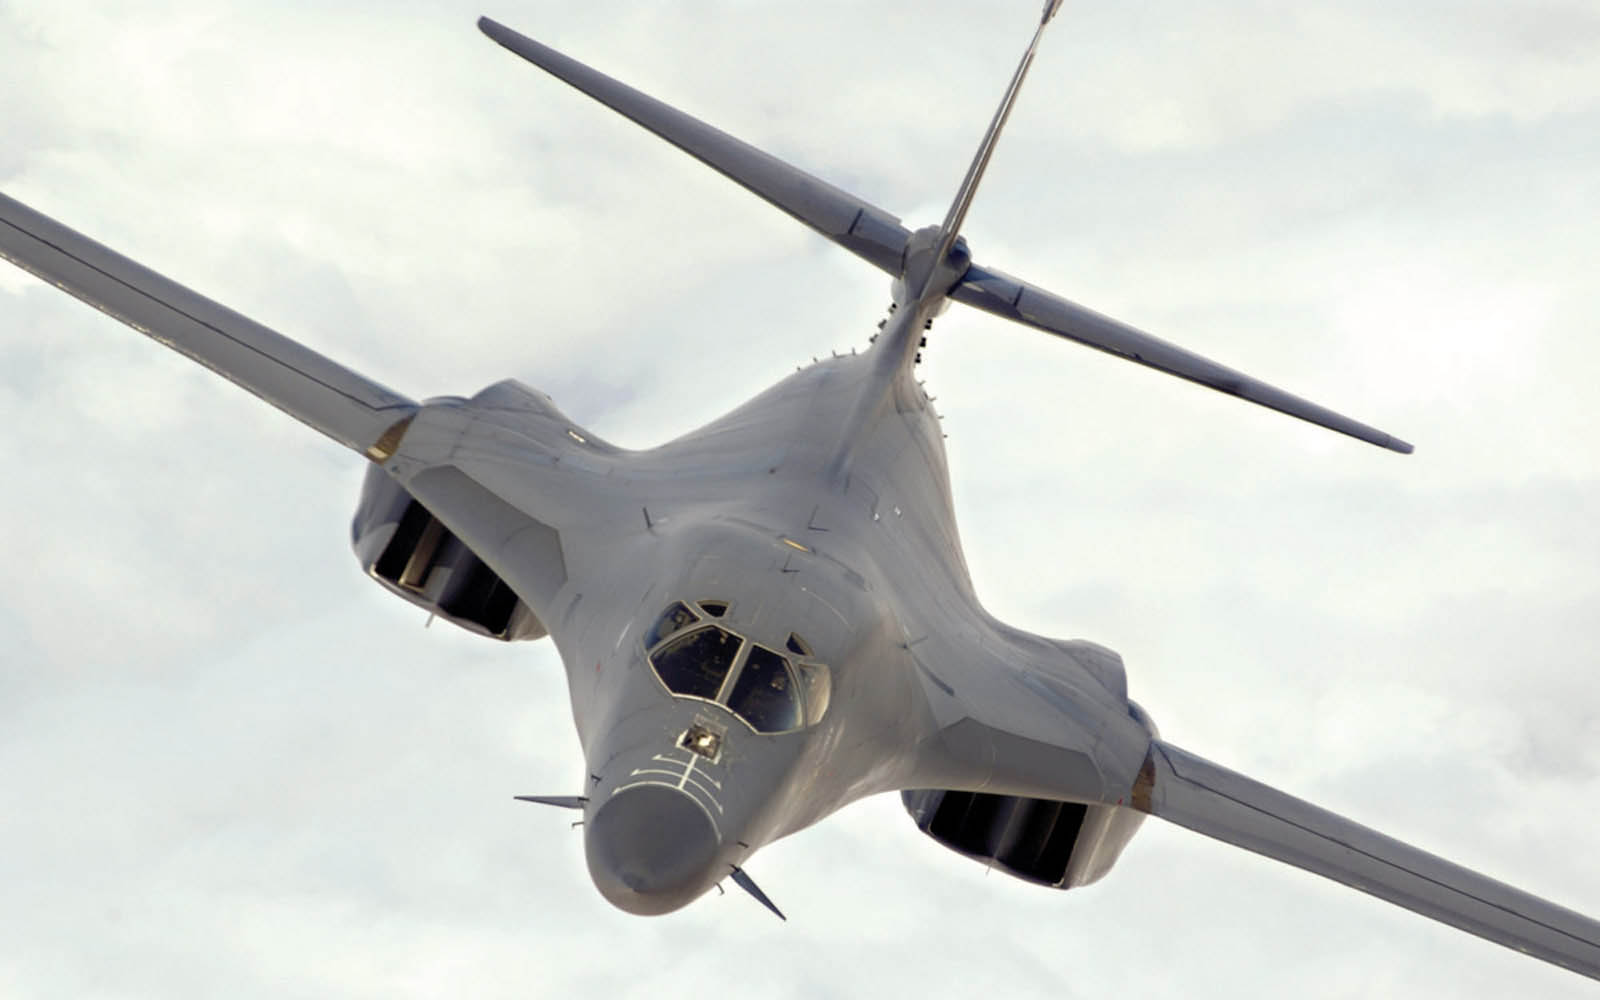 wallpapers: Rockwell B-1 Lancer Aircraft B1 Lancer Wallpaper